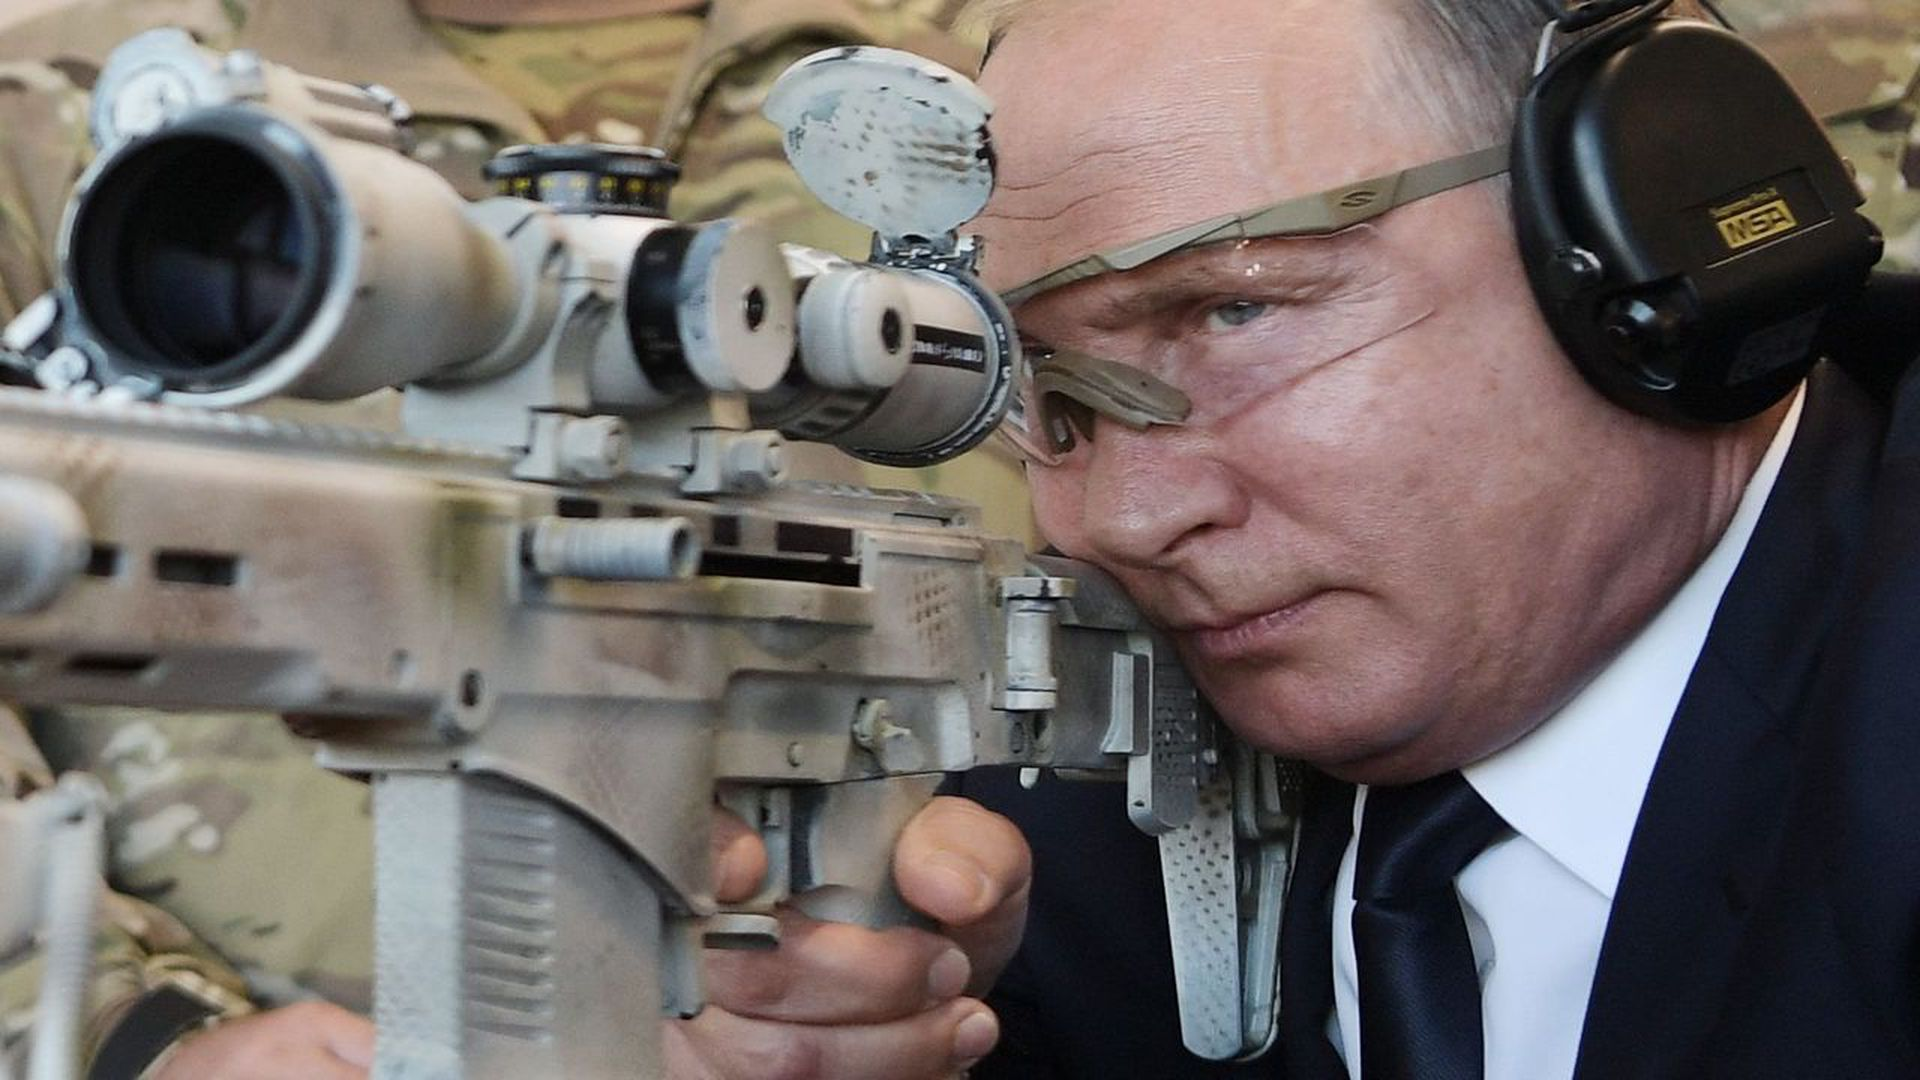 Vladimir Putin shoots an advanced Kalashnikov sniper rifle during a visit to the military-themed Patriot Park outside Moscow, in September. Photo: Alexey Nikolsky/AFP/Getty Images